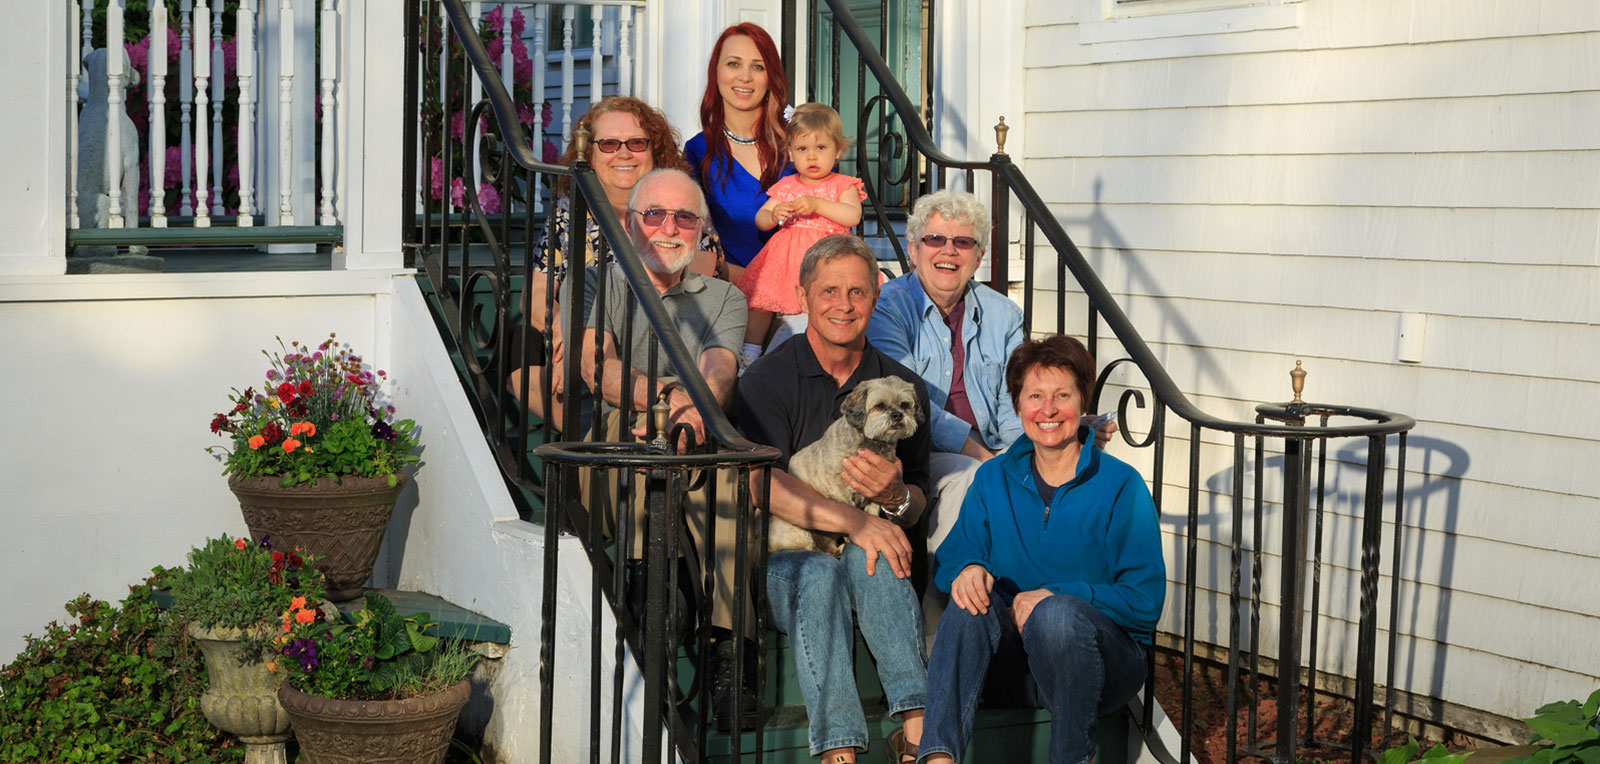 Family Picture | ADMIRAL SIMS B&B, Newport Rhode Island